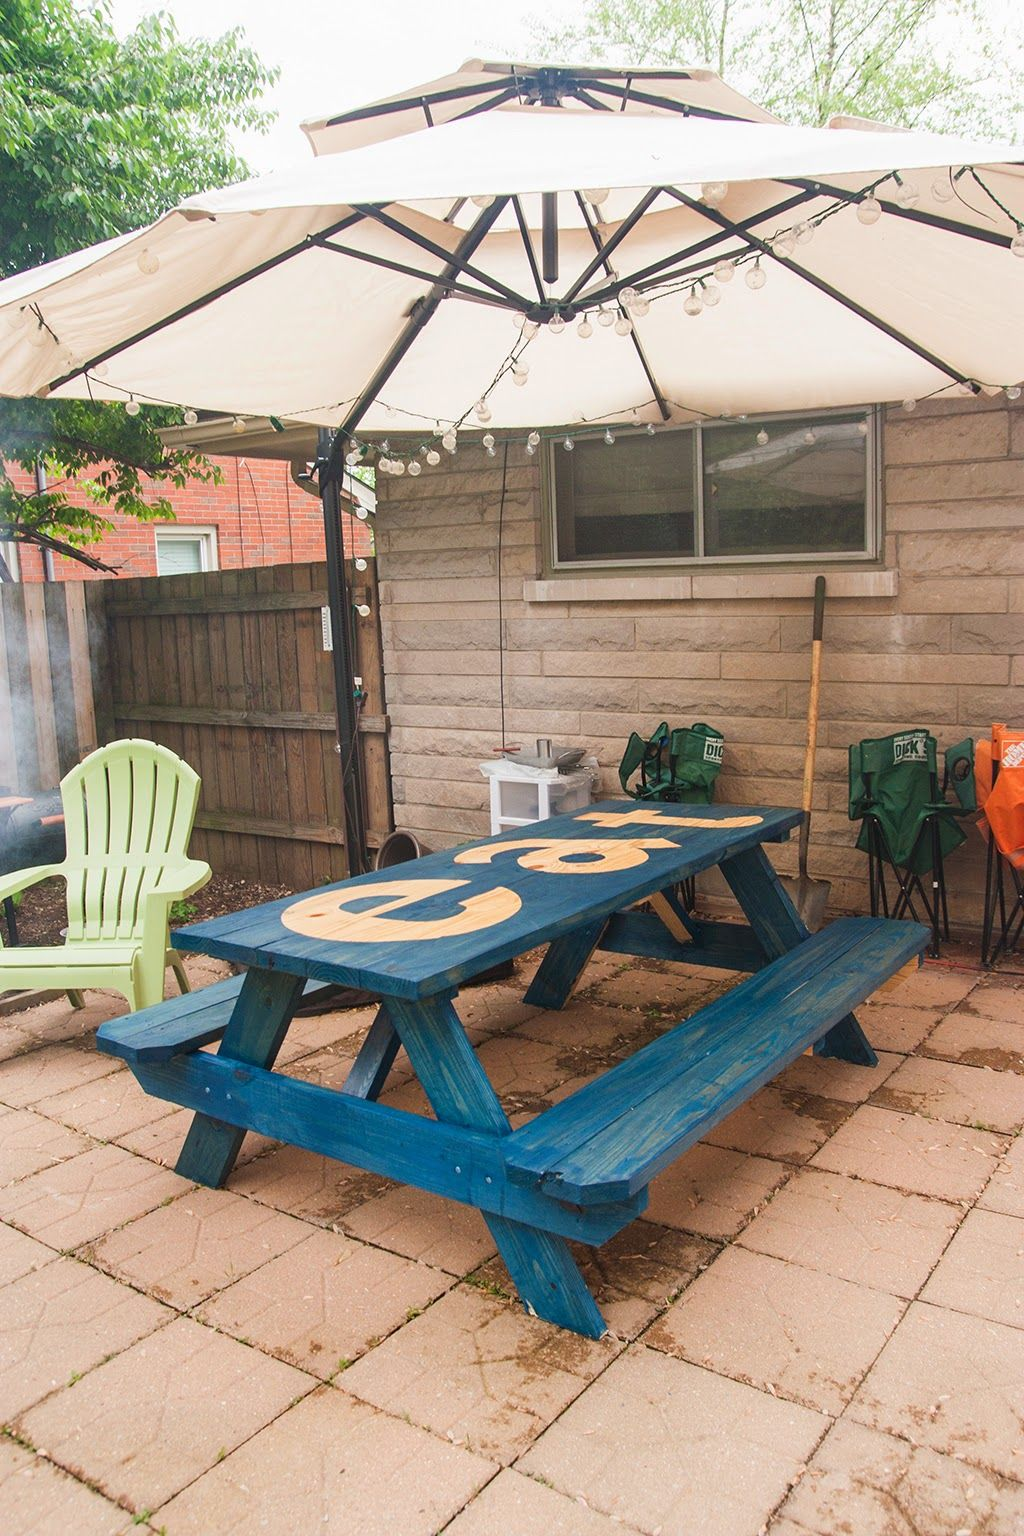 House Blogs diy stained and stenciled picnic table: my old kentucky house blog